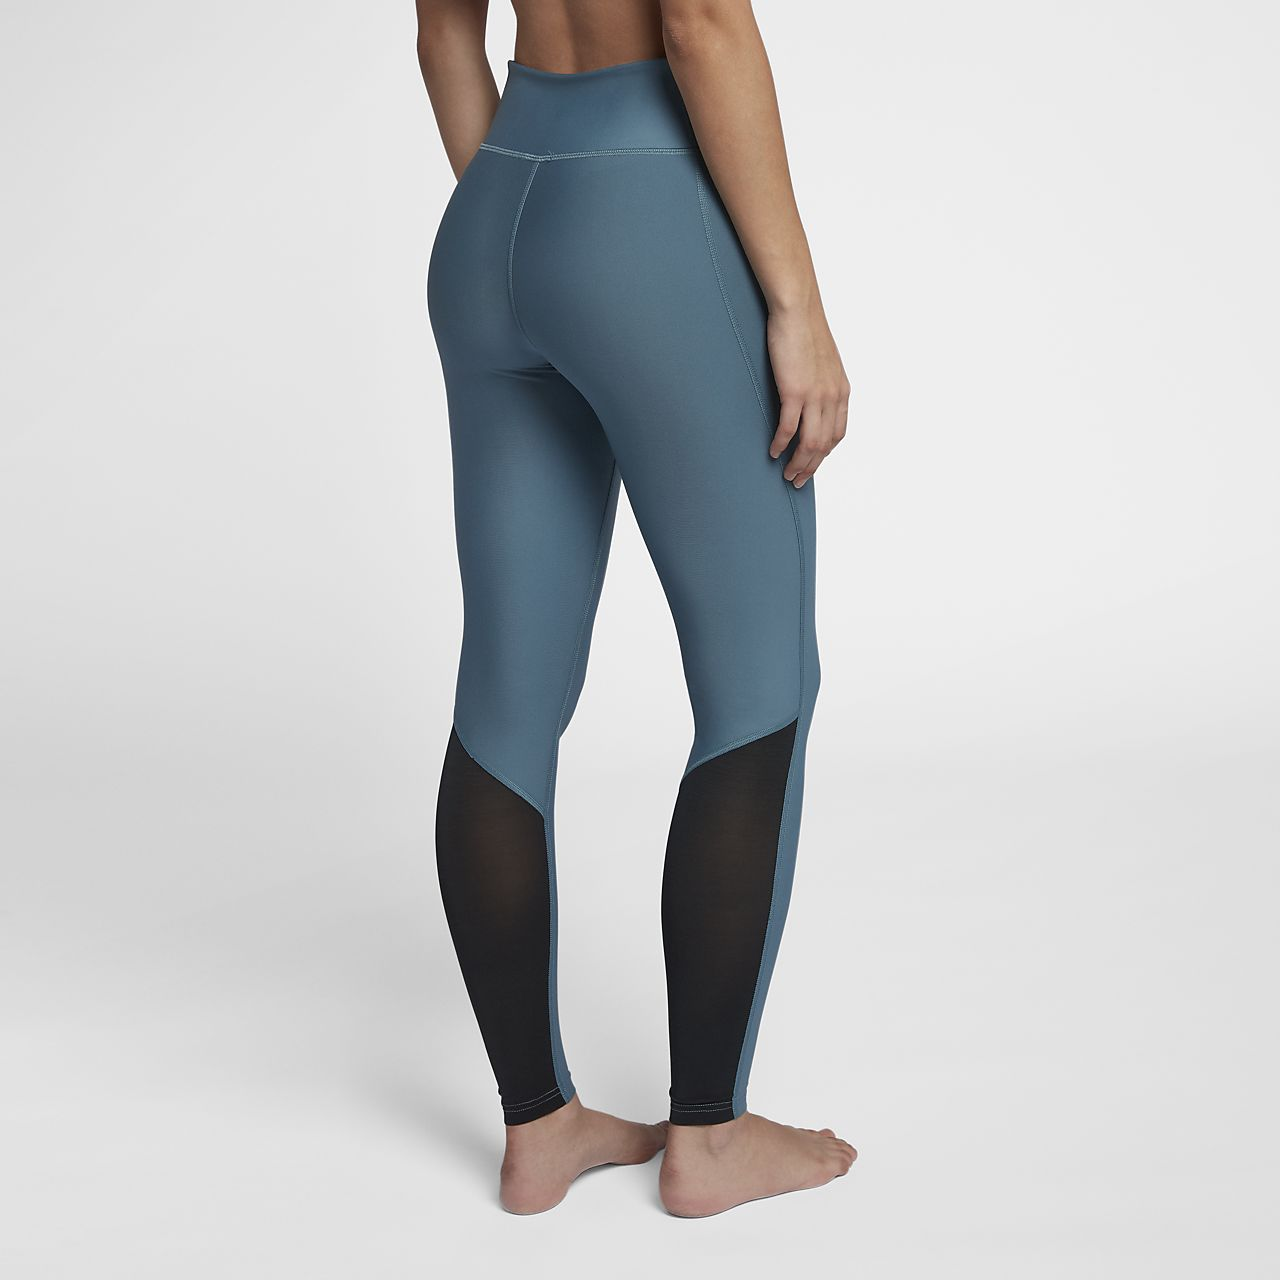 Hurley Womens Quick Dry Compression Mesh Legging